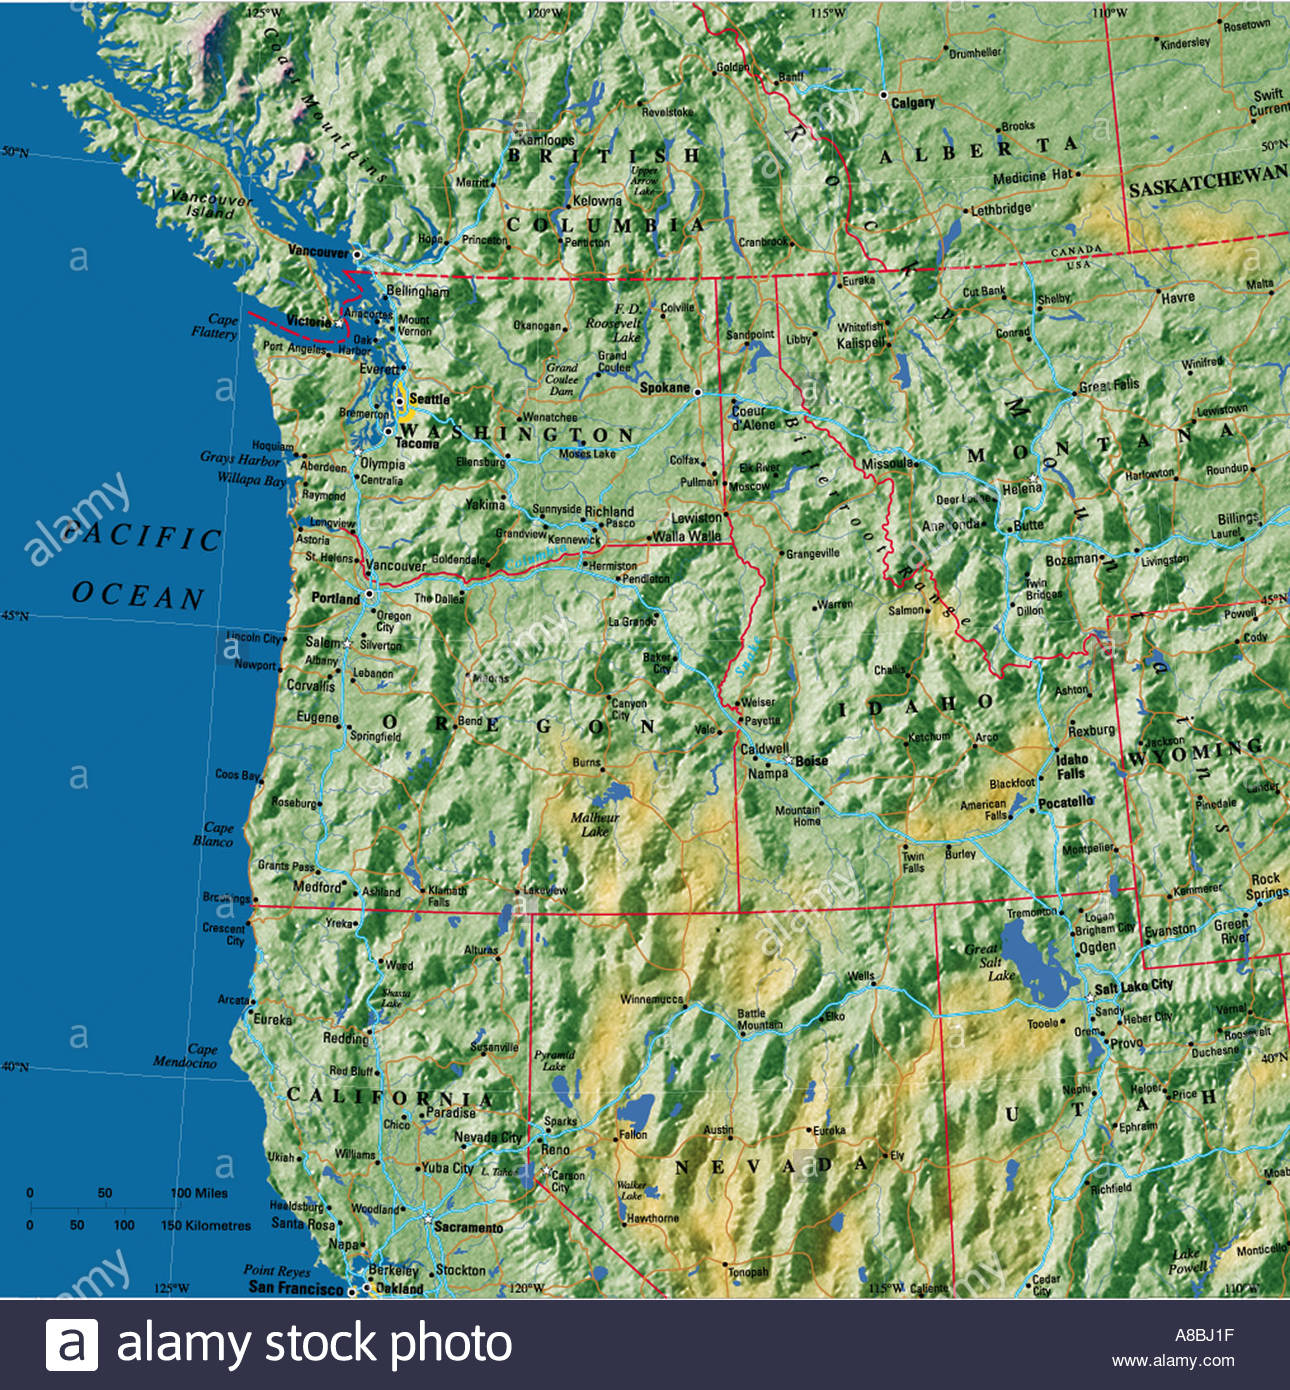 Map Maps Usa California Oregon Washington State East Coast Abjf - Washington Oregon California Coast Map